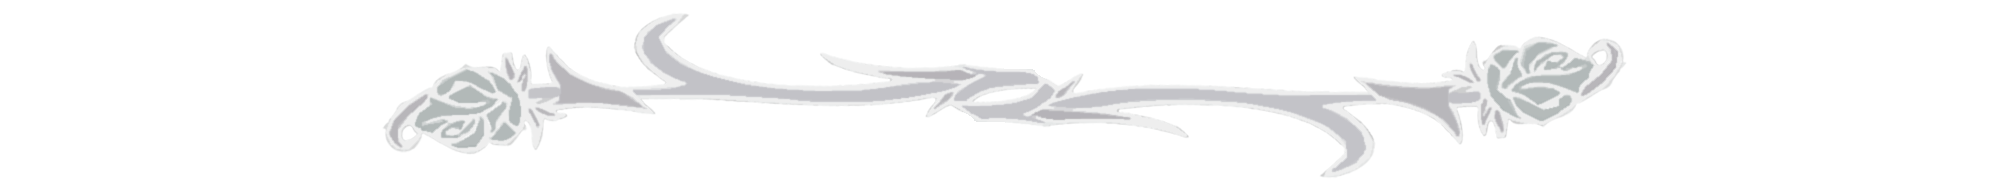 White decorative lines png. Image animal jam clans